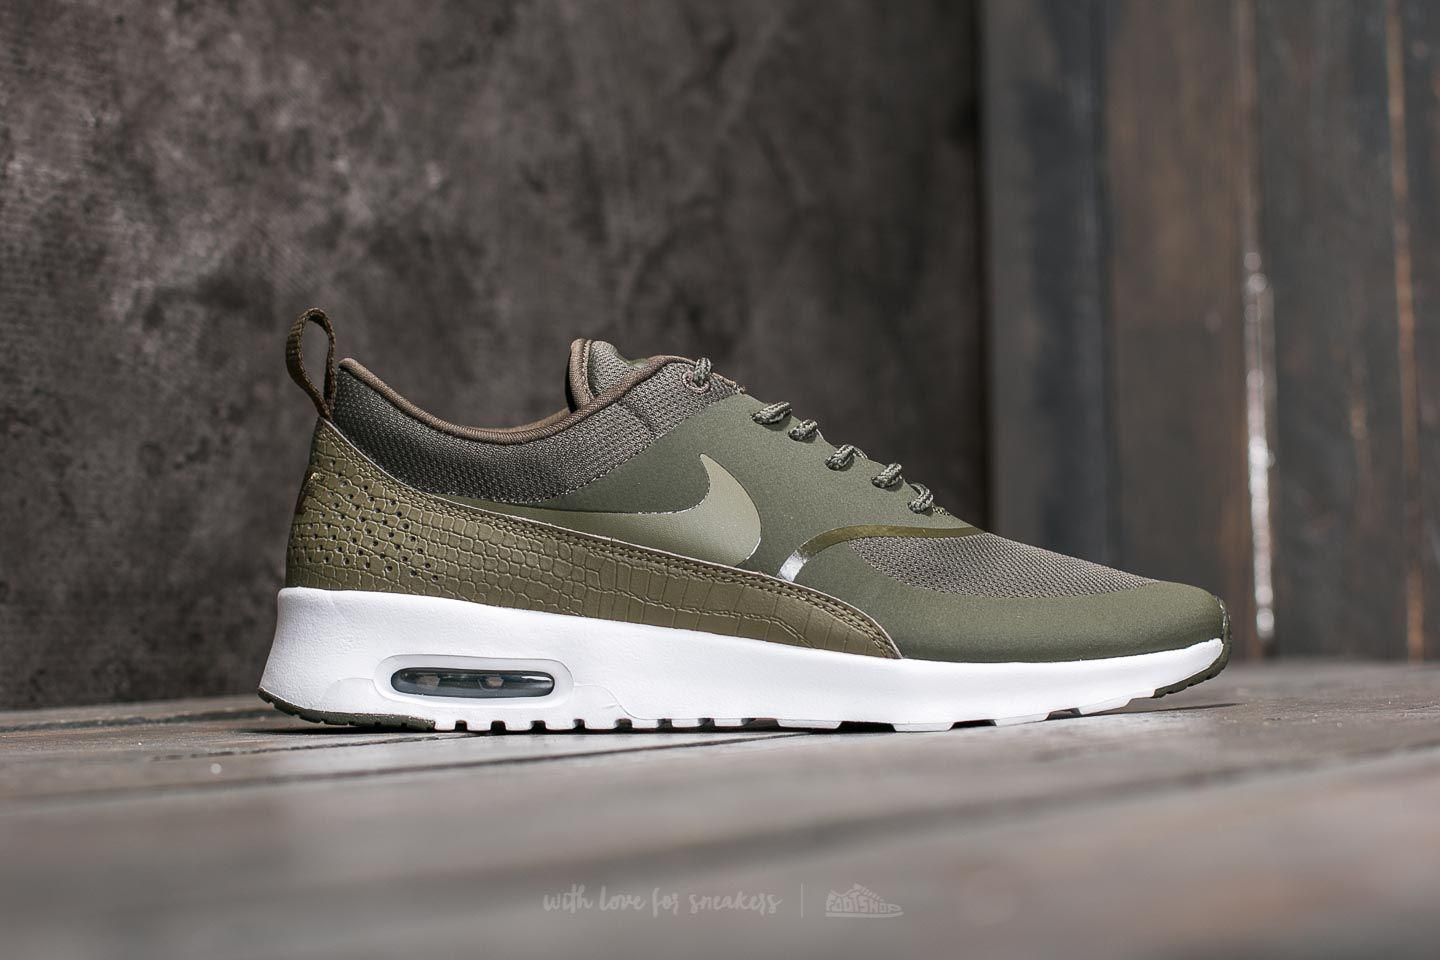 69ec08ebaaa0 ... top quality womens air max thea low top sneakers cargo khaki nike 12a88  7f3c4